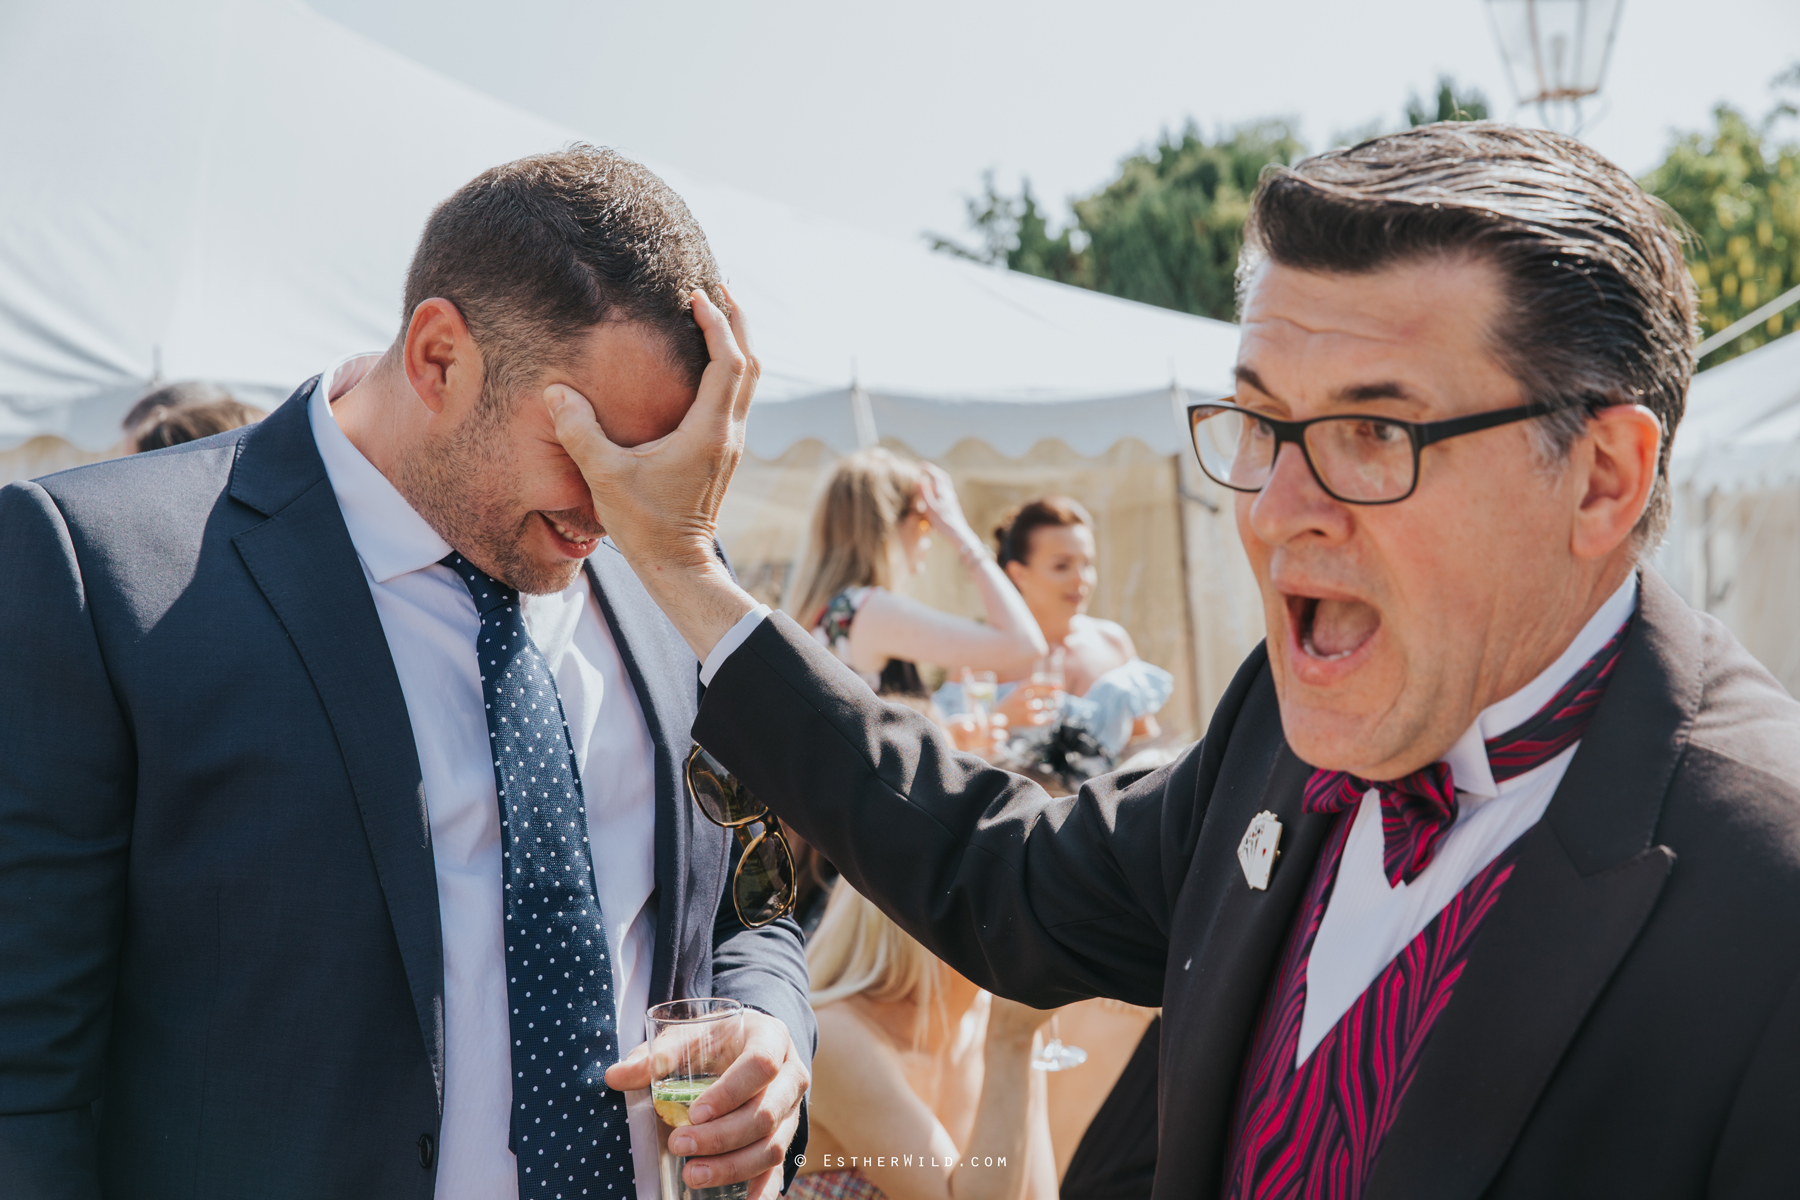 Wootton_Wedding_Copyright_Esther_Wild_Photographer_IMG_1711.jpg